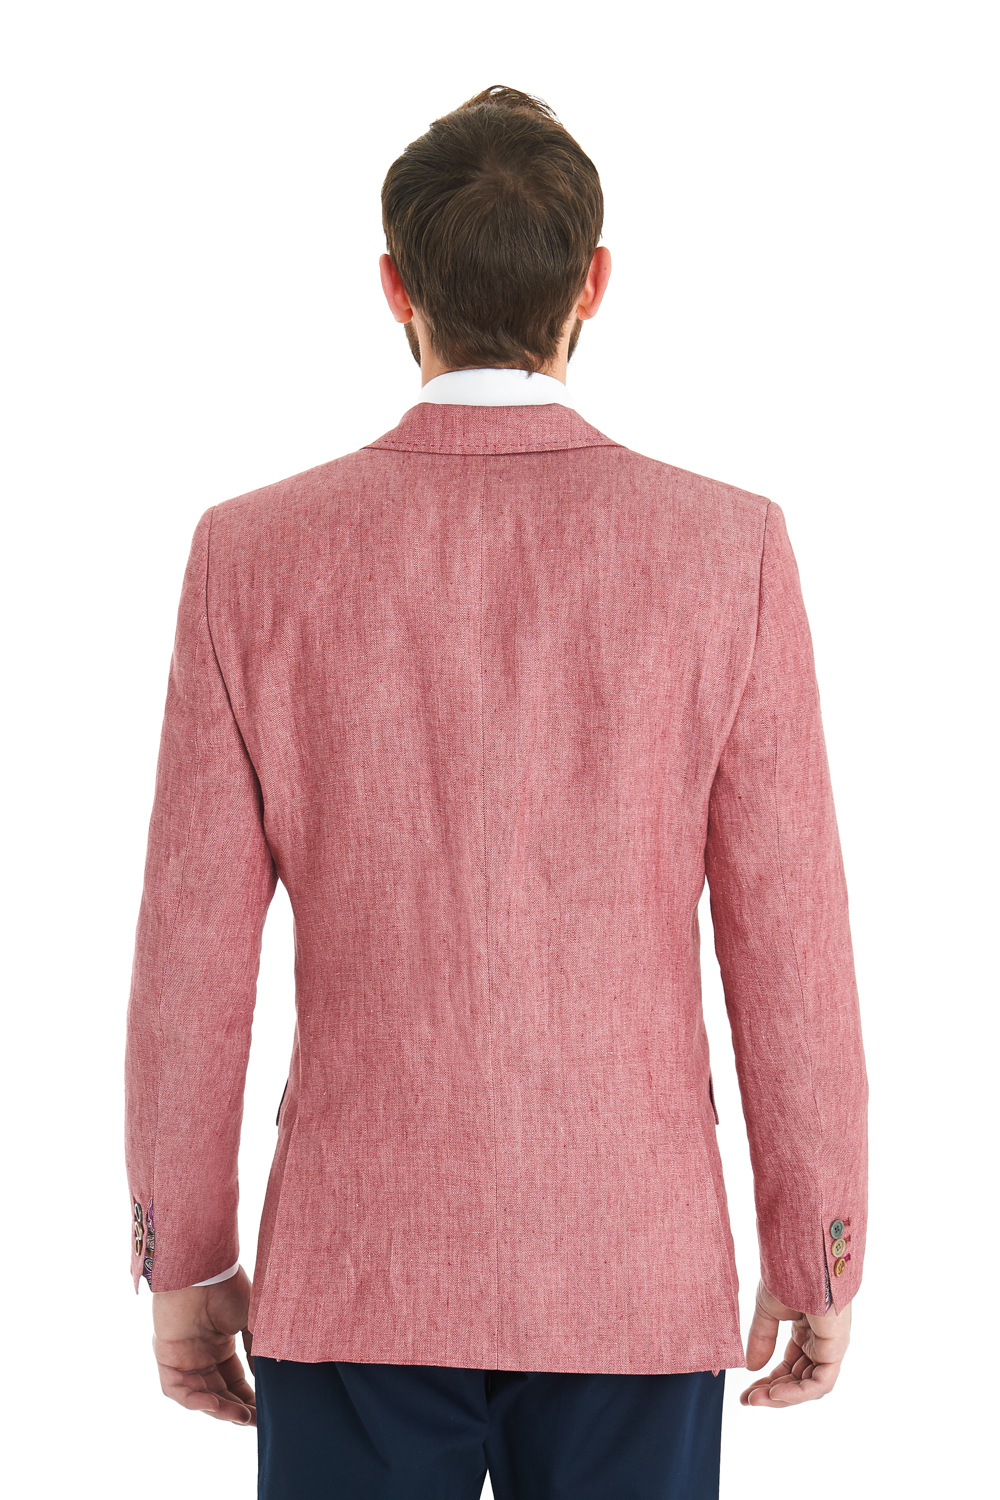 Lyst Ted Baker Tailored Fit Pink Herringbone Linen